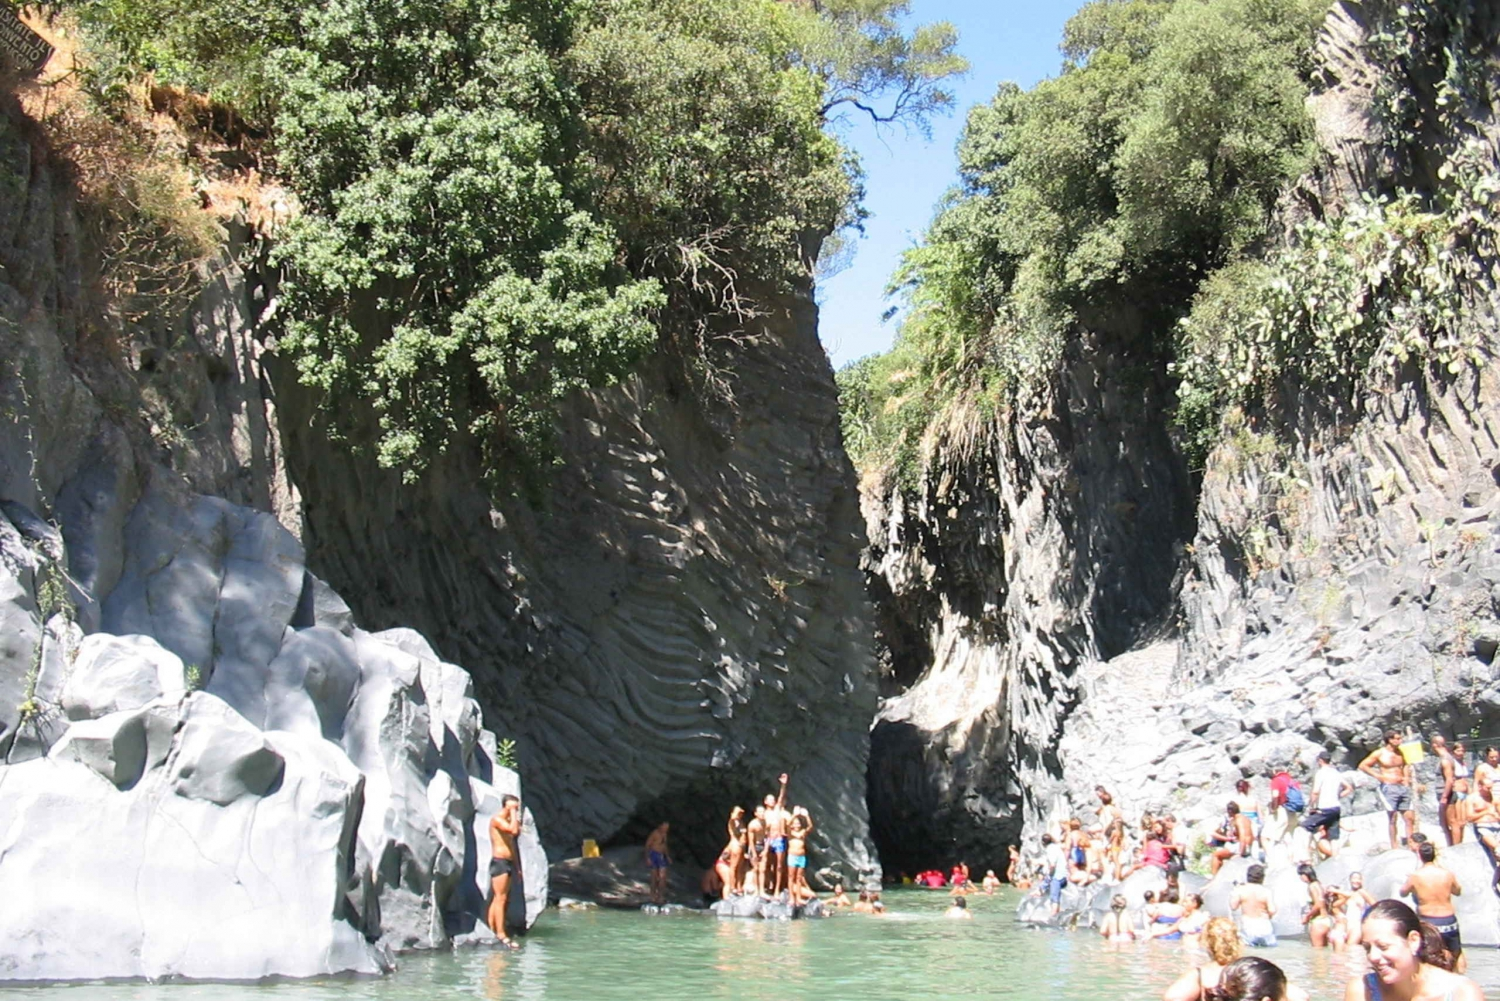 Private Tour of Alcantara Gorges. Including Food and Wine